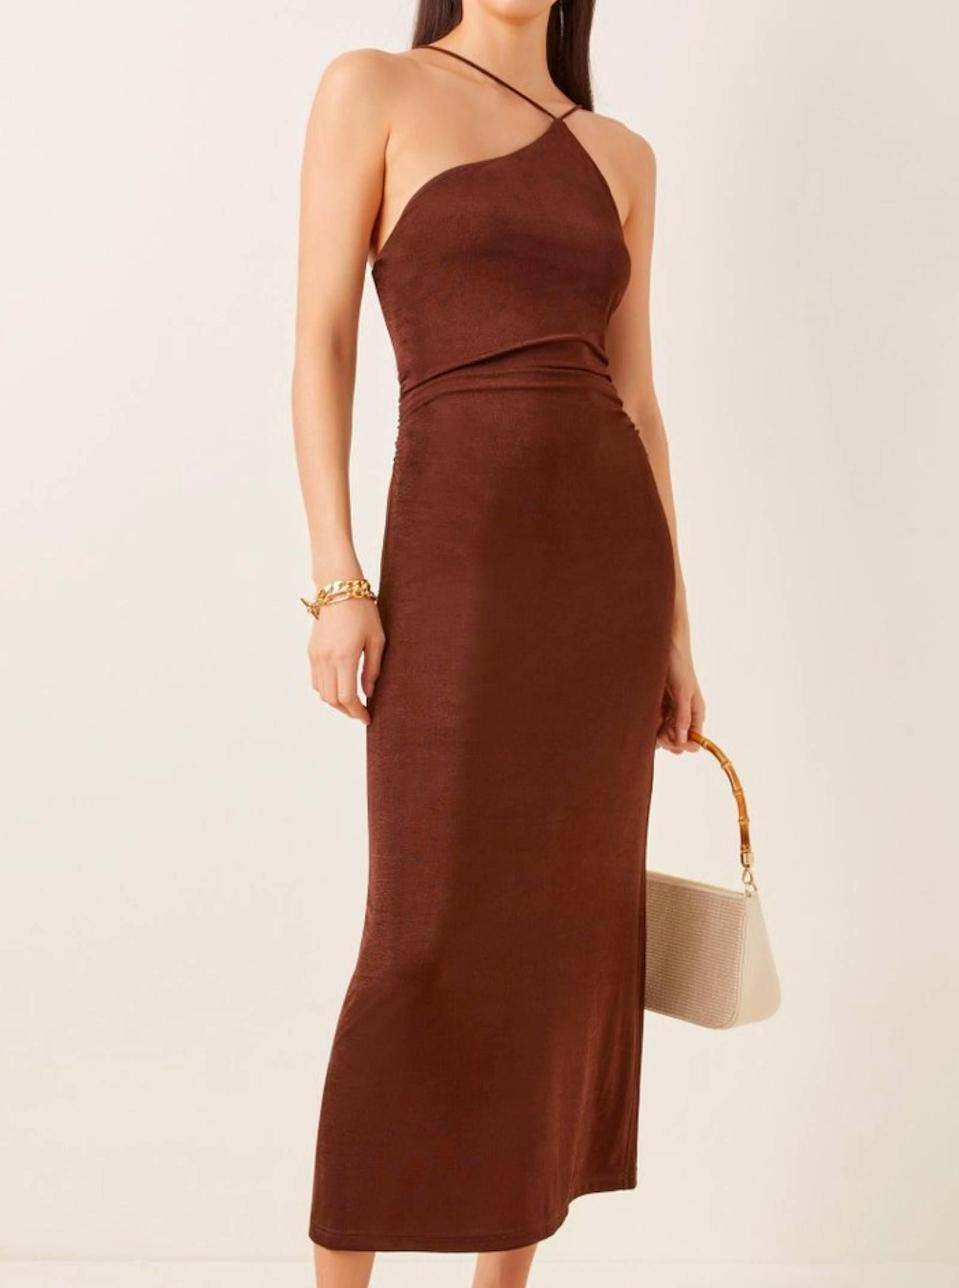 """Understated yet chic as hell, this one comes with bonus points for the toasty <a href=""""https://www.glamour.com/gallery/brown-neutral-trend?mbid=synd_yahoo_rss"""" rel=""""nofollow noopener"""" target=""""_blank"""" data-ylk=""""slk:brown hue"""" class=""""link rapid-noclick-resp"""">brown hue</a>. $175, Moda Operandi. <a href=""""https://www.modaoperandi.com/women/p/significant-other/bella-dress/477595"""" rel=""""nofollow noopener"""" target=""""_blank"""" data-ylk=""""slk:Get it now!"""" class=""""link rapid-noclick-resp"""">Get it now!</a>"""